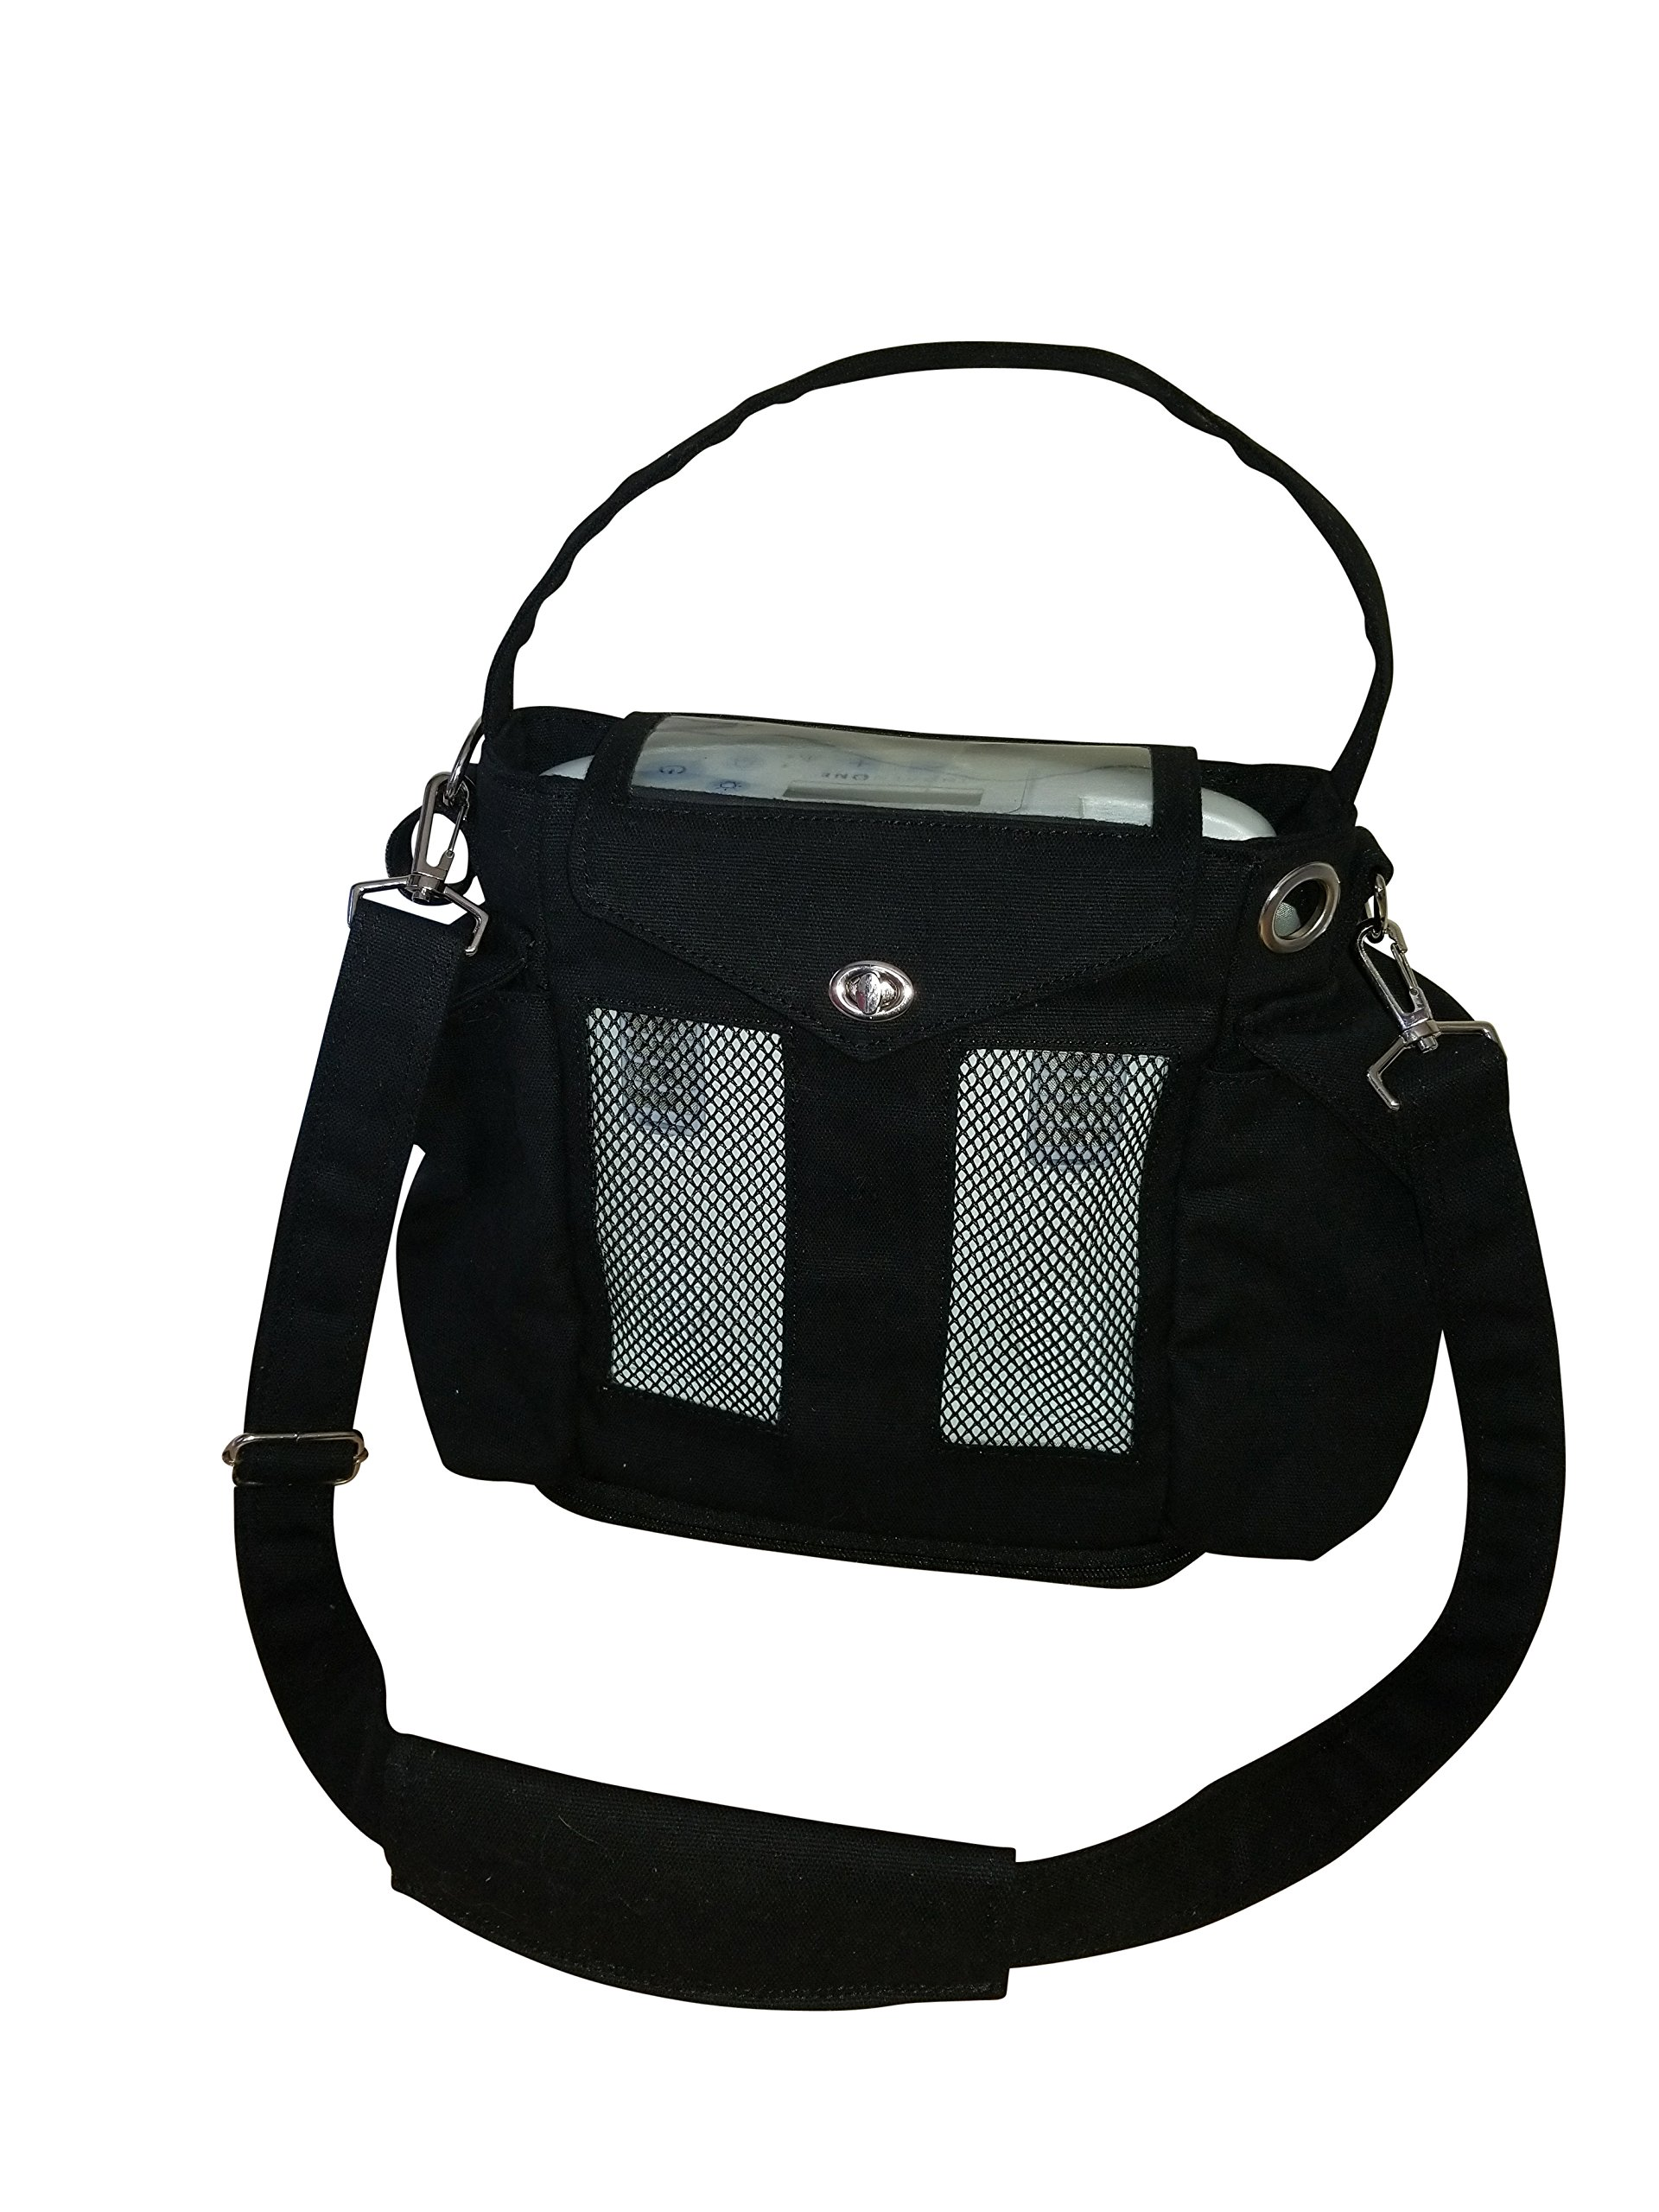 Carry Bag for Inogen One G3, Pockets for Keys, Wallet, Inogen accessories/O2totes